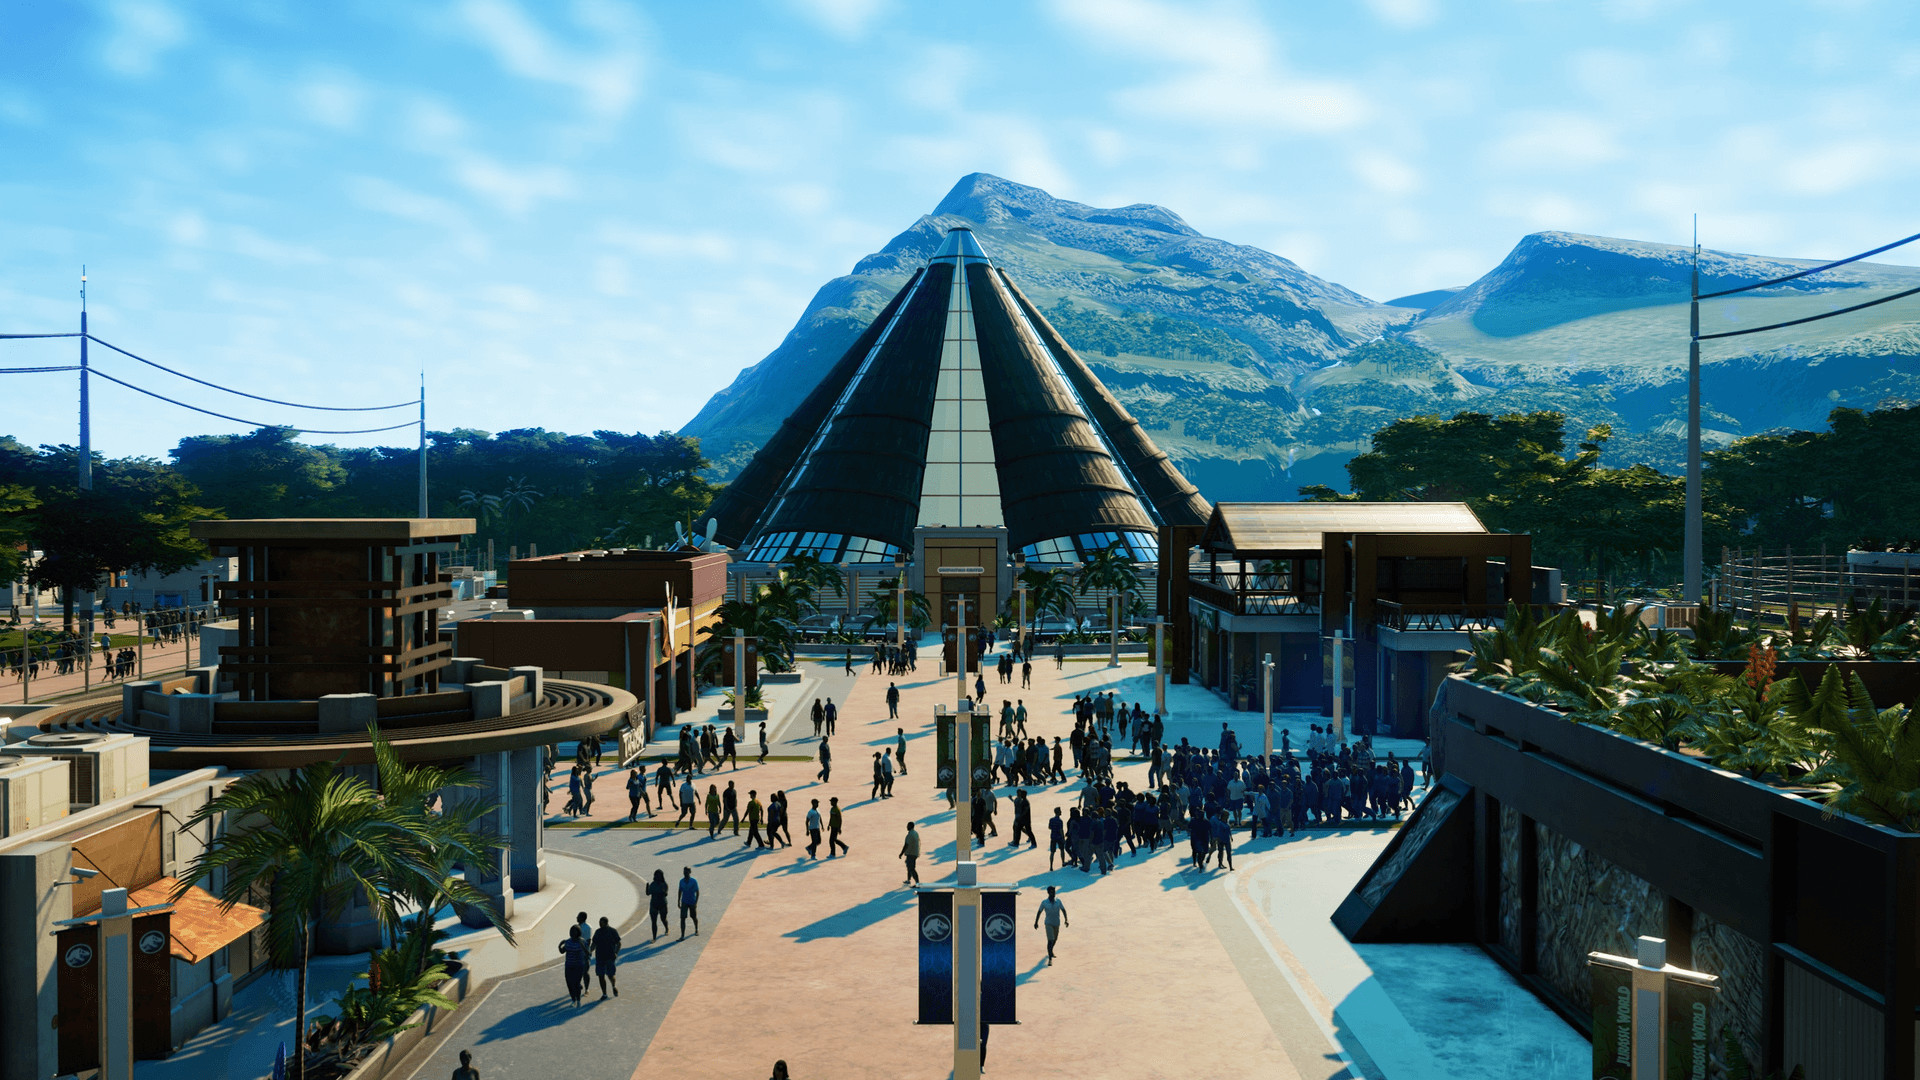 3073-jurassic-world-evolution-gallery-6_1